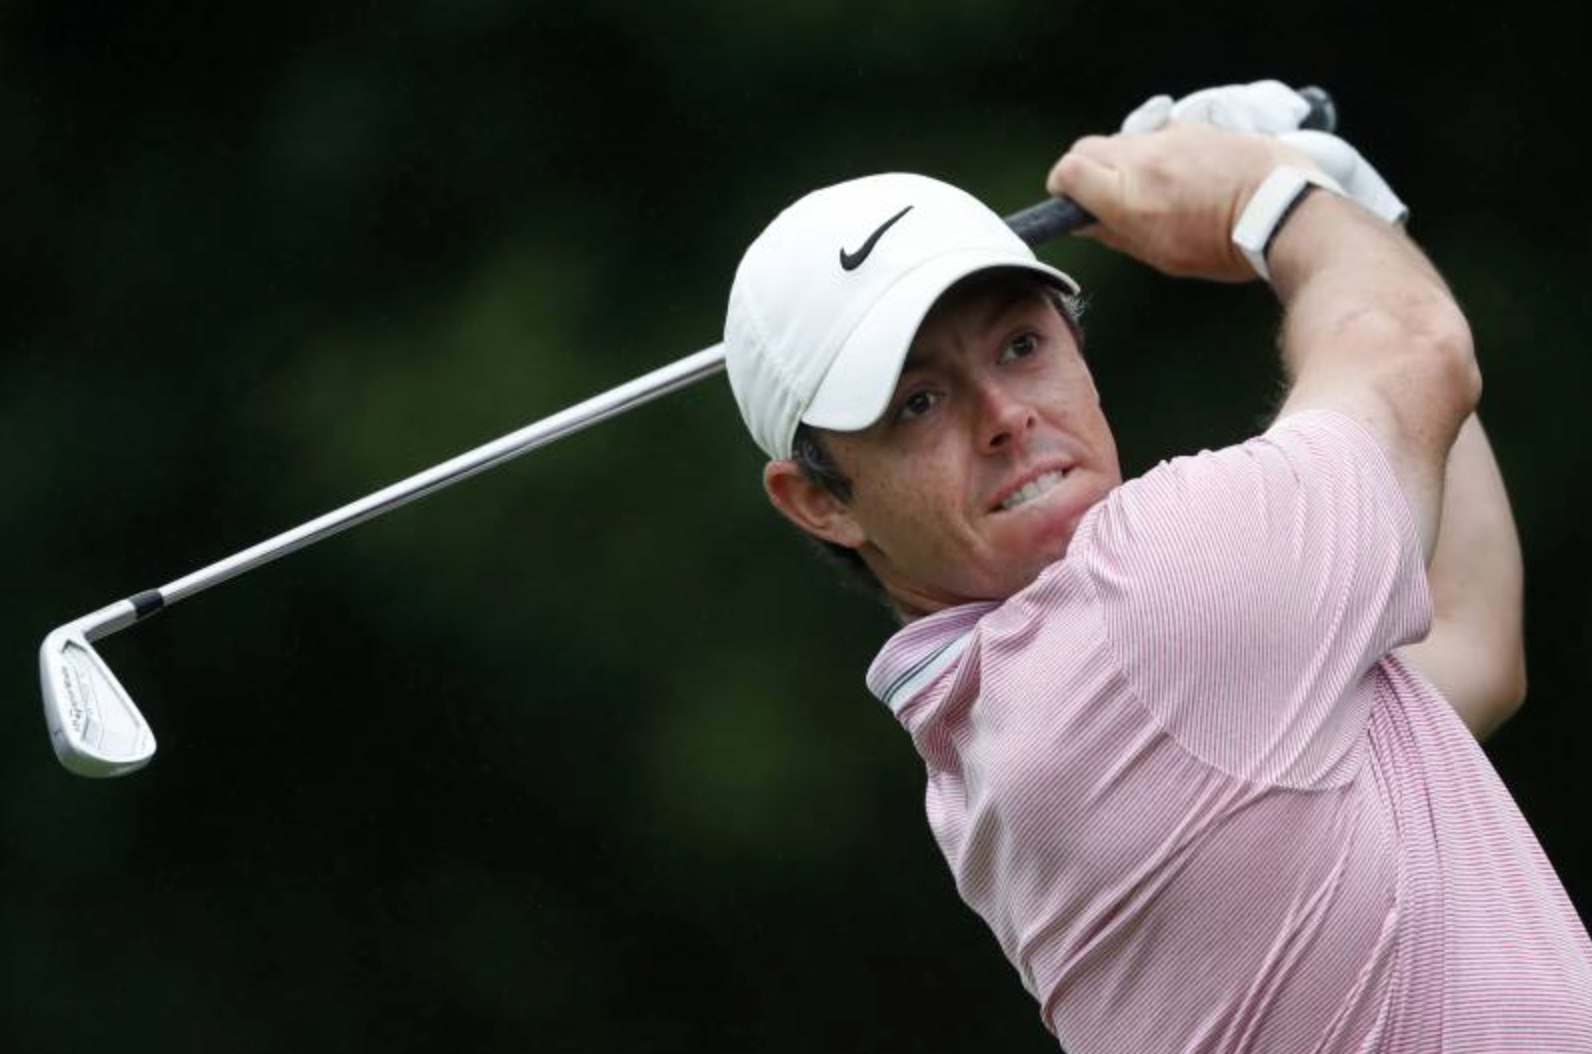 FedEx Cup Winner 2019: Rory McIlroy's Prize Money and Final Golf Standings